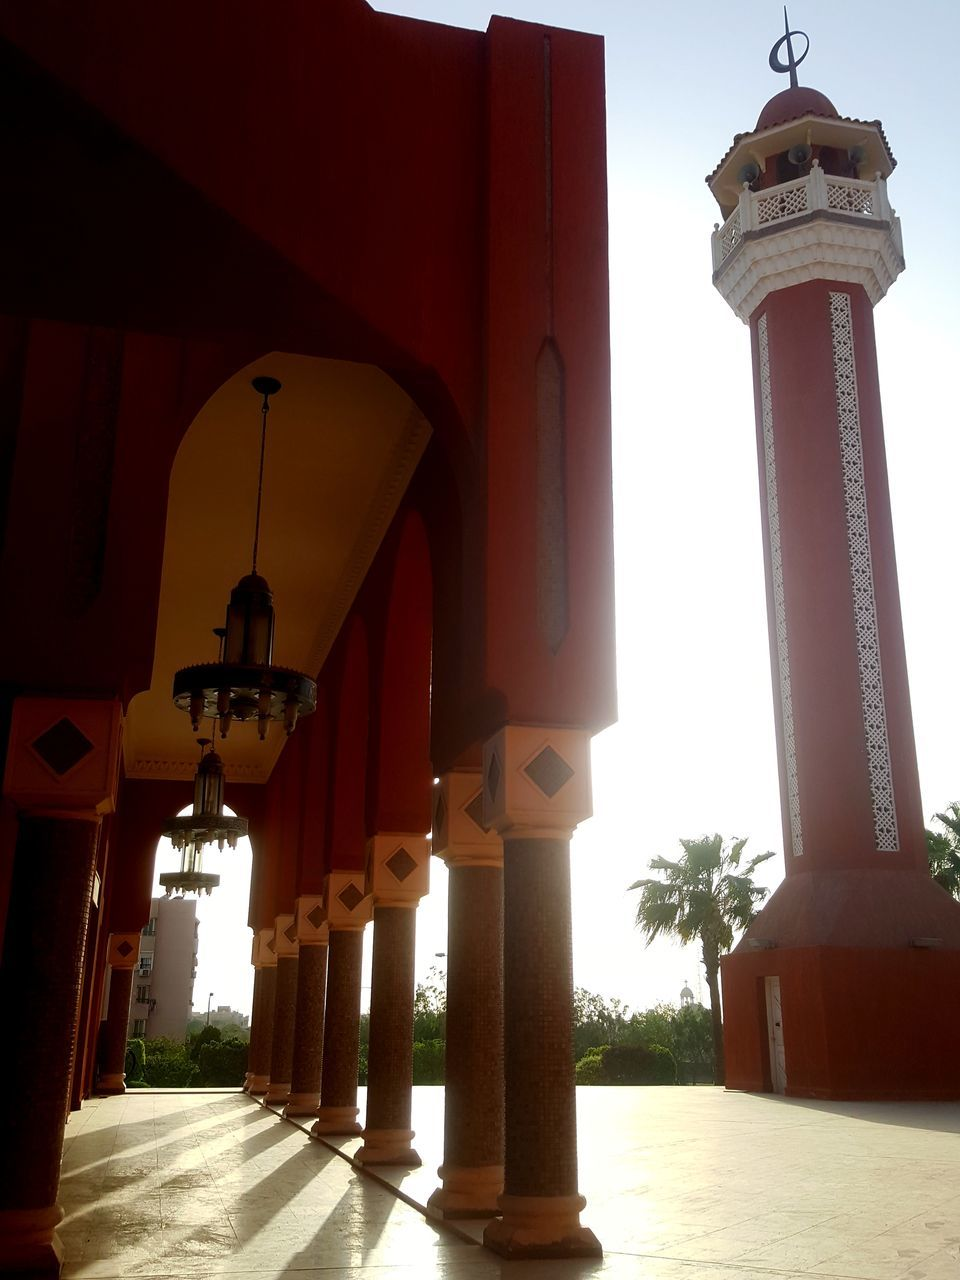 architectural column, architecture, built structure, red, pillar, building exterior, day, outdoors, lantern, no people, illuminated, sky